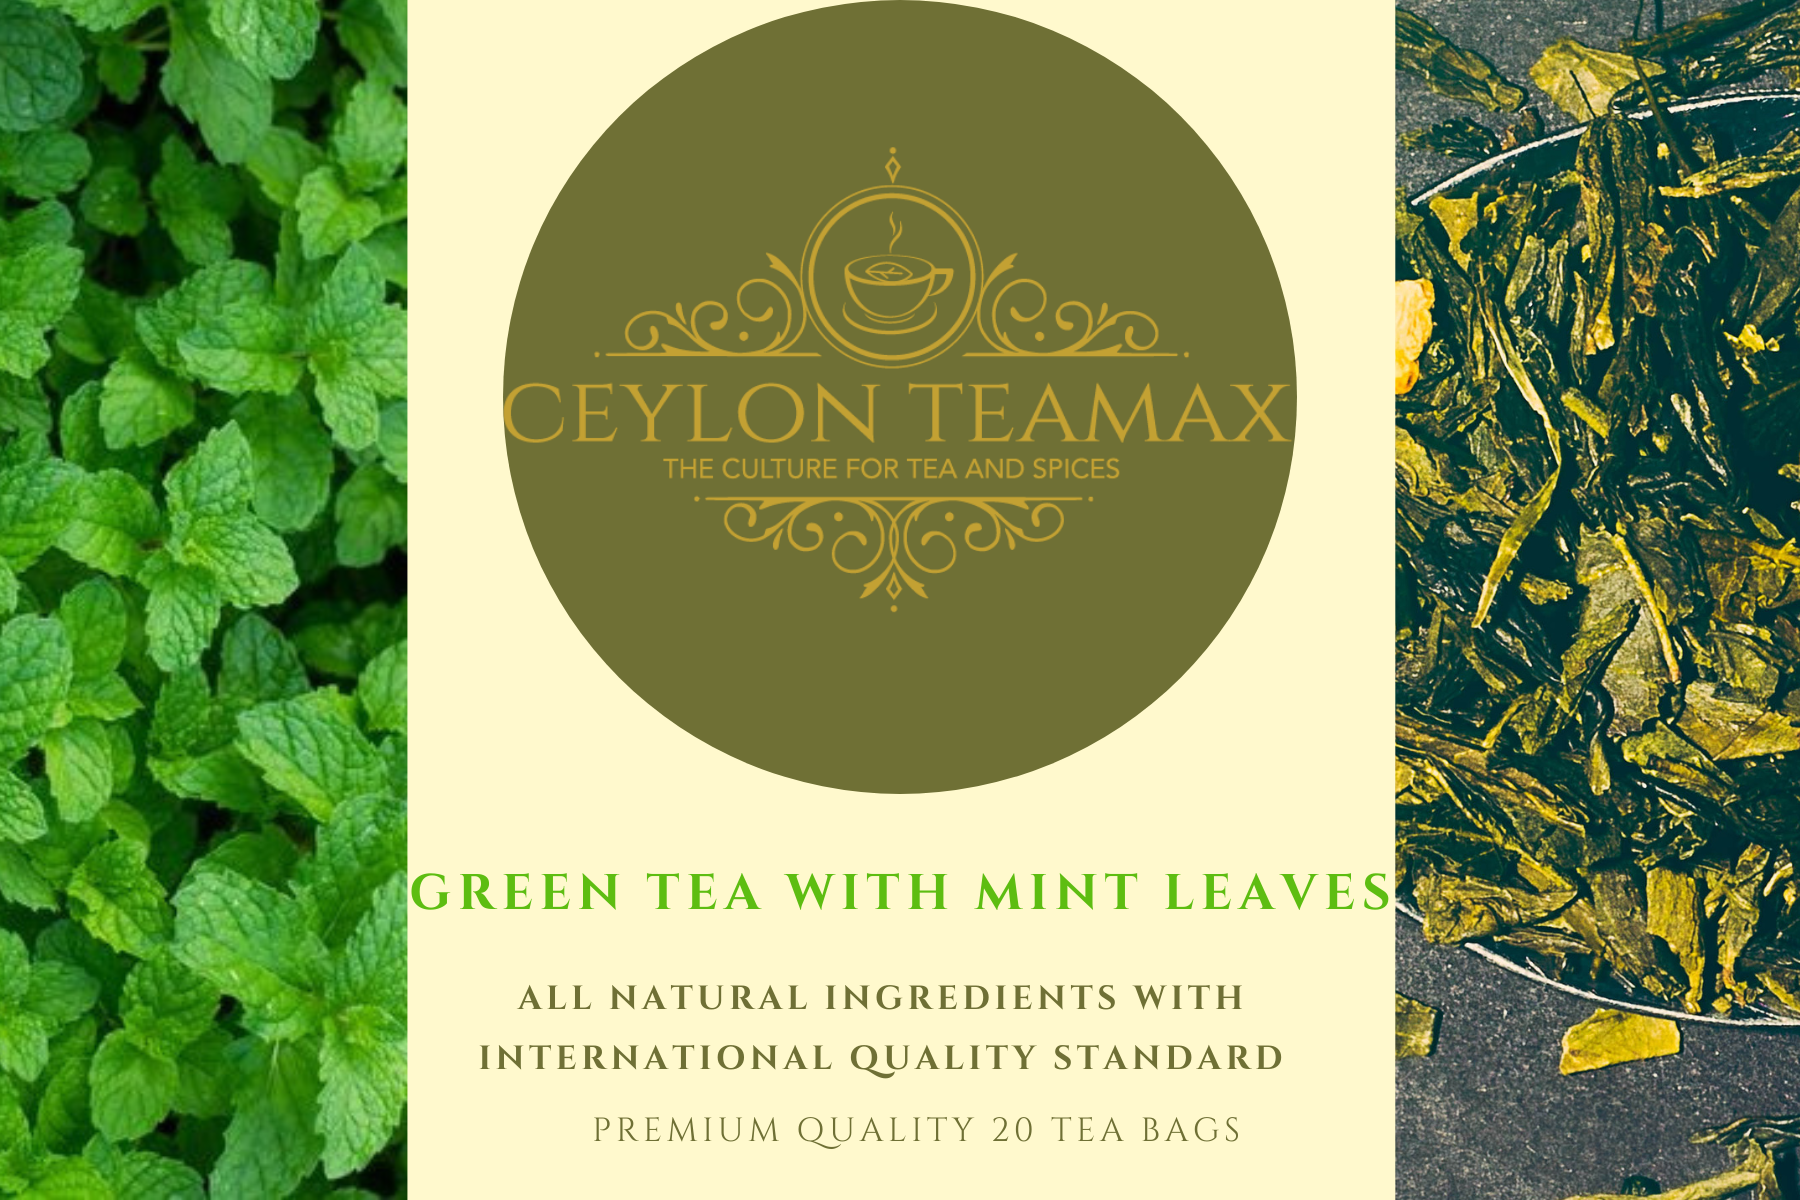 NATURAL MINT LEAVES WITH CEYLON GREEN TEA - PREMIUM QUALITY STAPLE LESS TEA BAGS - Ceylon Teamax